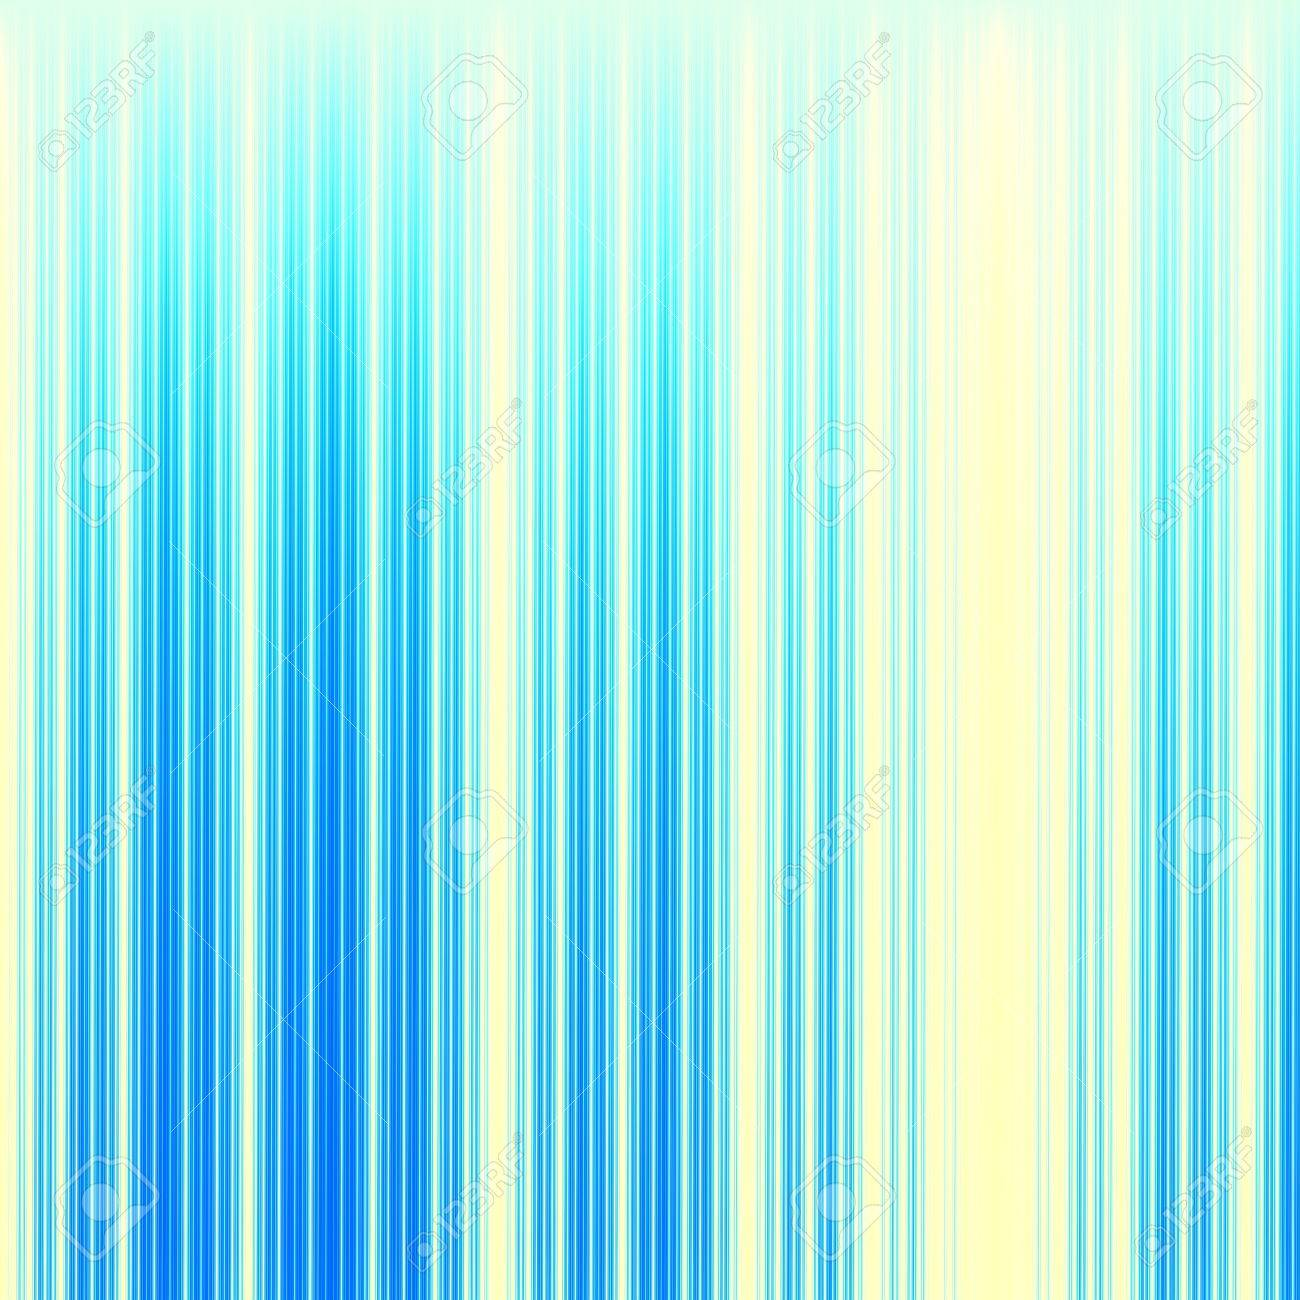 44ee058869 White blue paper background. Vivid cyan shine. Soft winter tone. Plain  striped arts. Bright blue texture. Light page coloring. Blank space for  text.